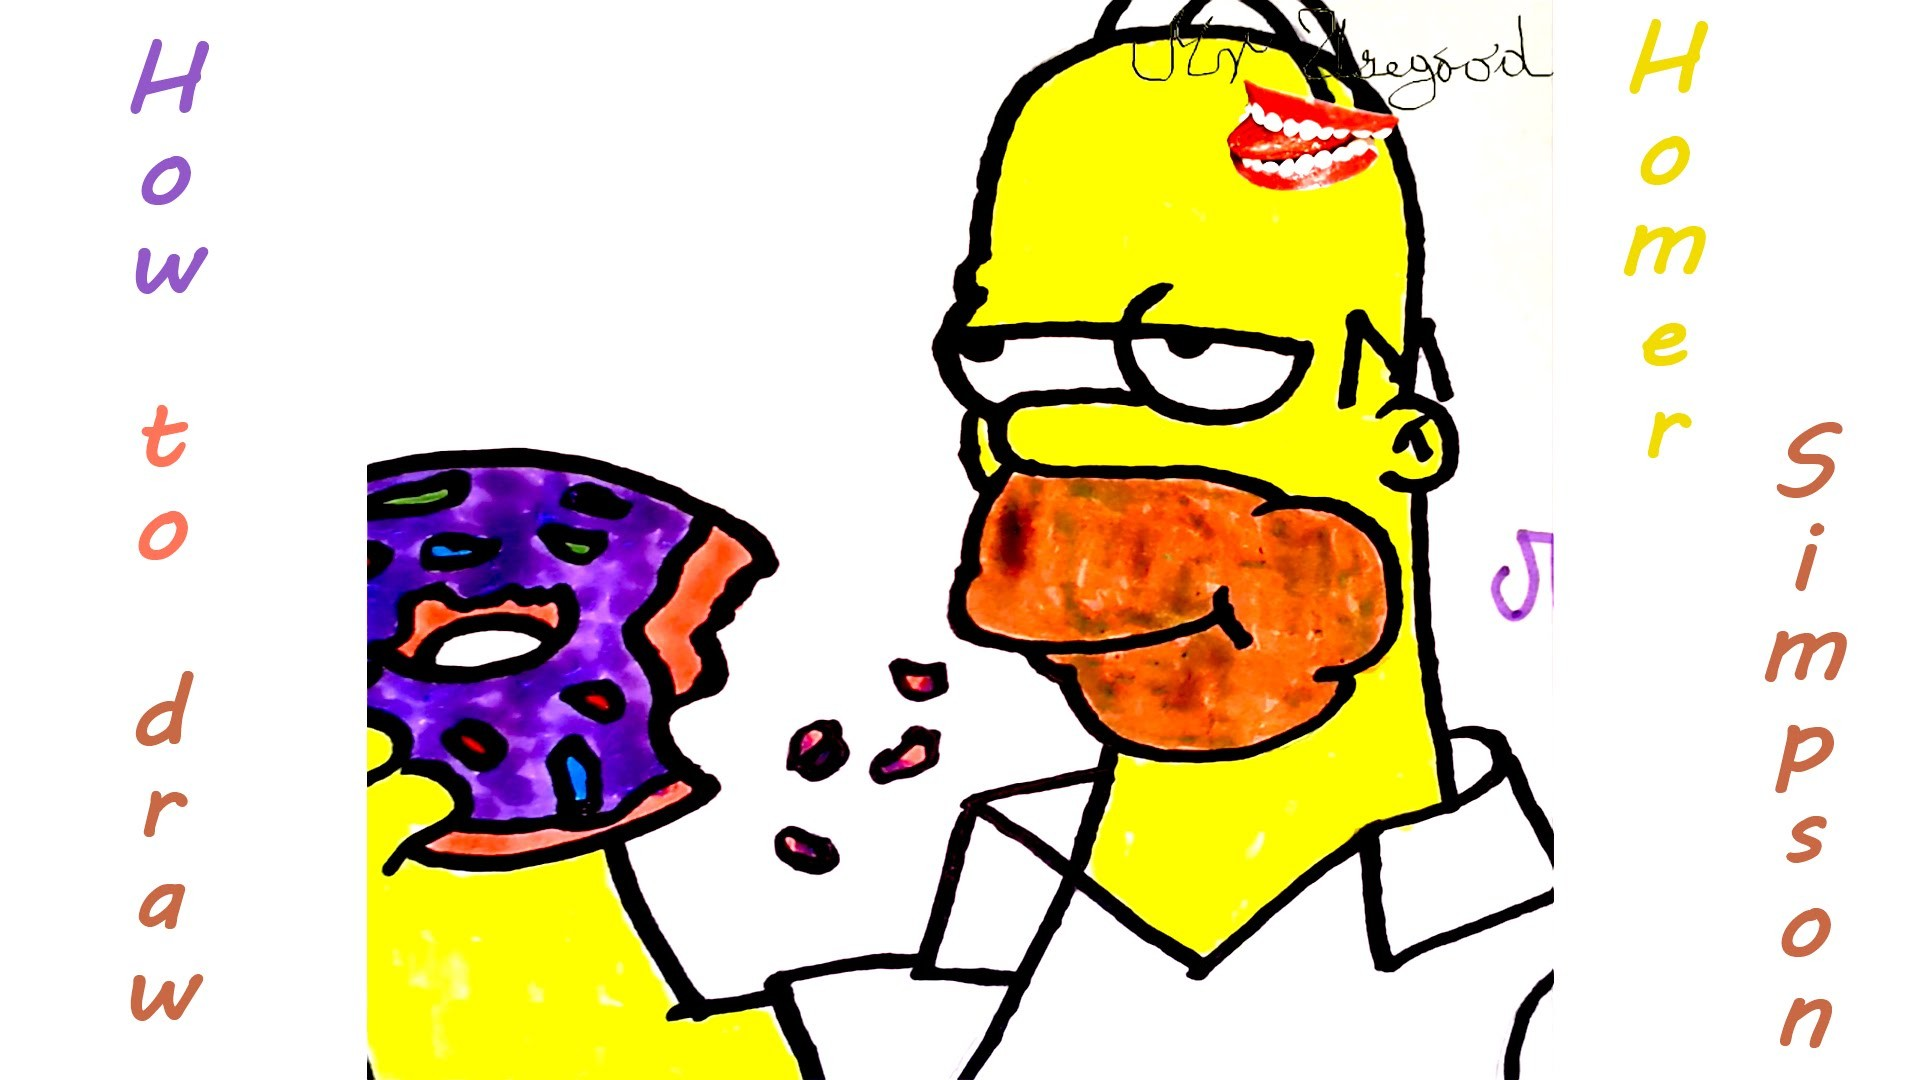 DIY How to draw easy stuff but cool on paper: draw Homer Simpson Eating a donut EASY | SPEED ART